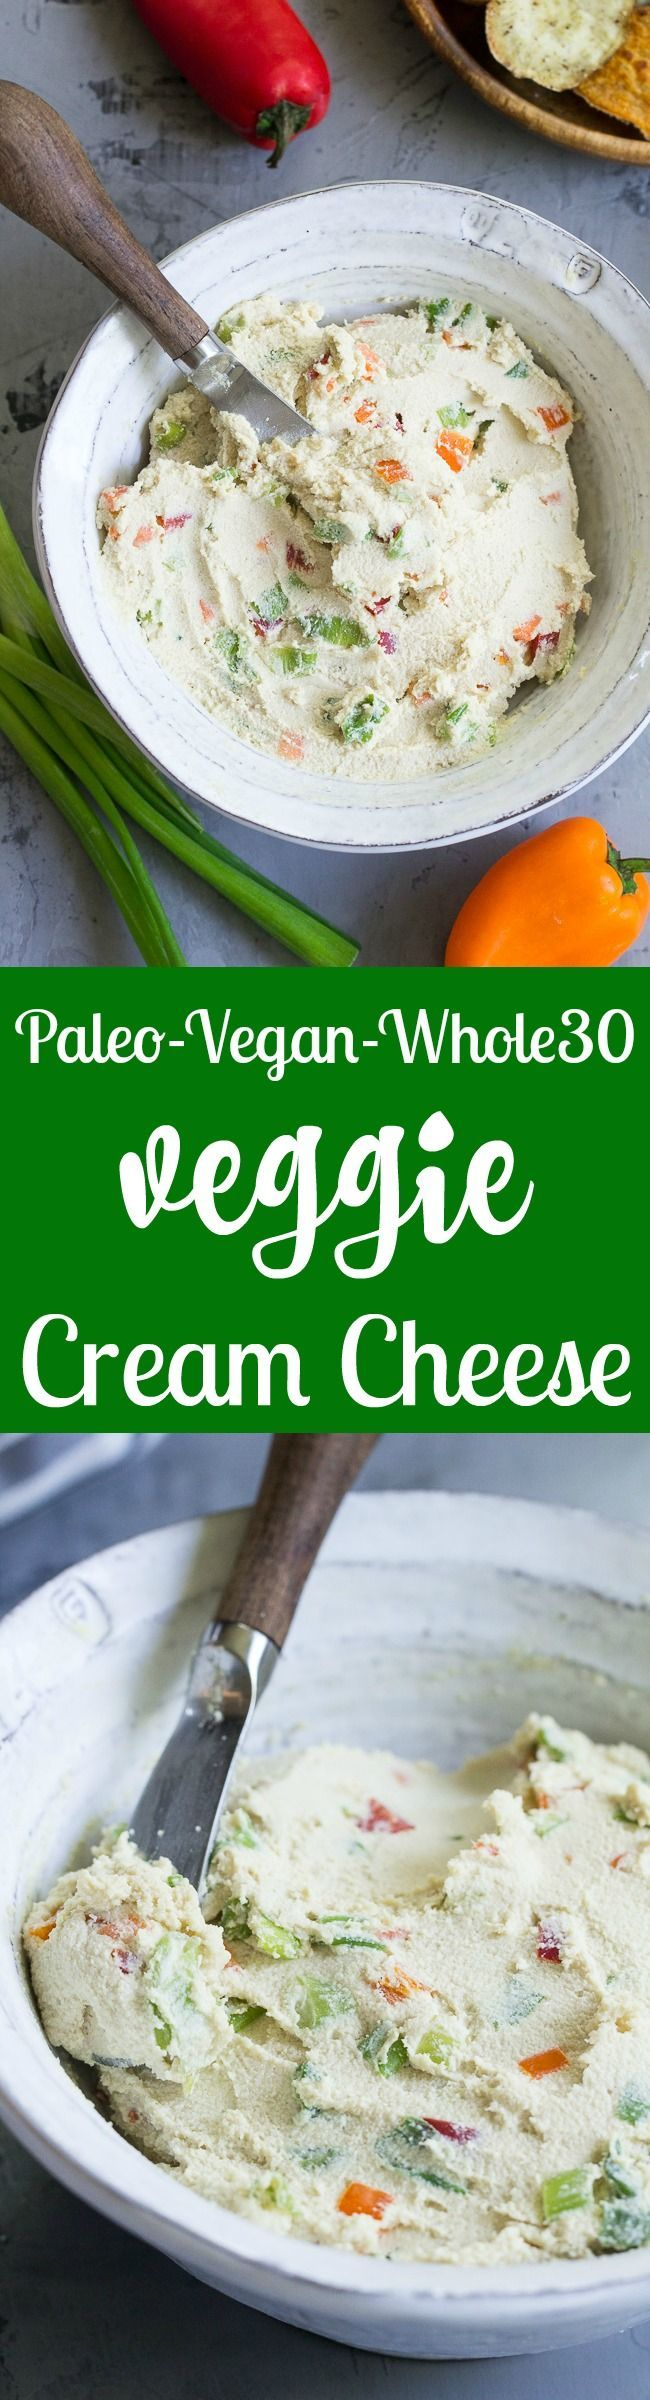 This veggie packed cashew cream cheese tastes so much like the real thing that you won't believe it's not actually cheese! It's made in minutes, great as a dip or spread, dairy free, vegan, paleo and Whole30.